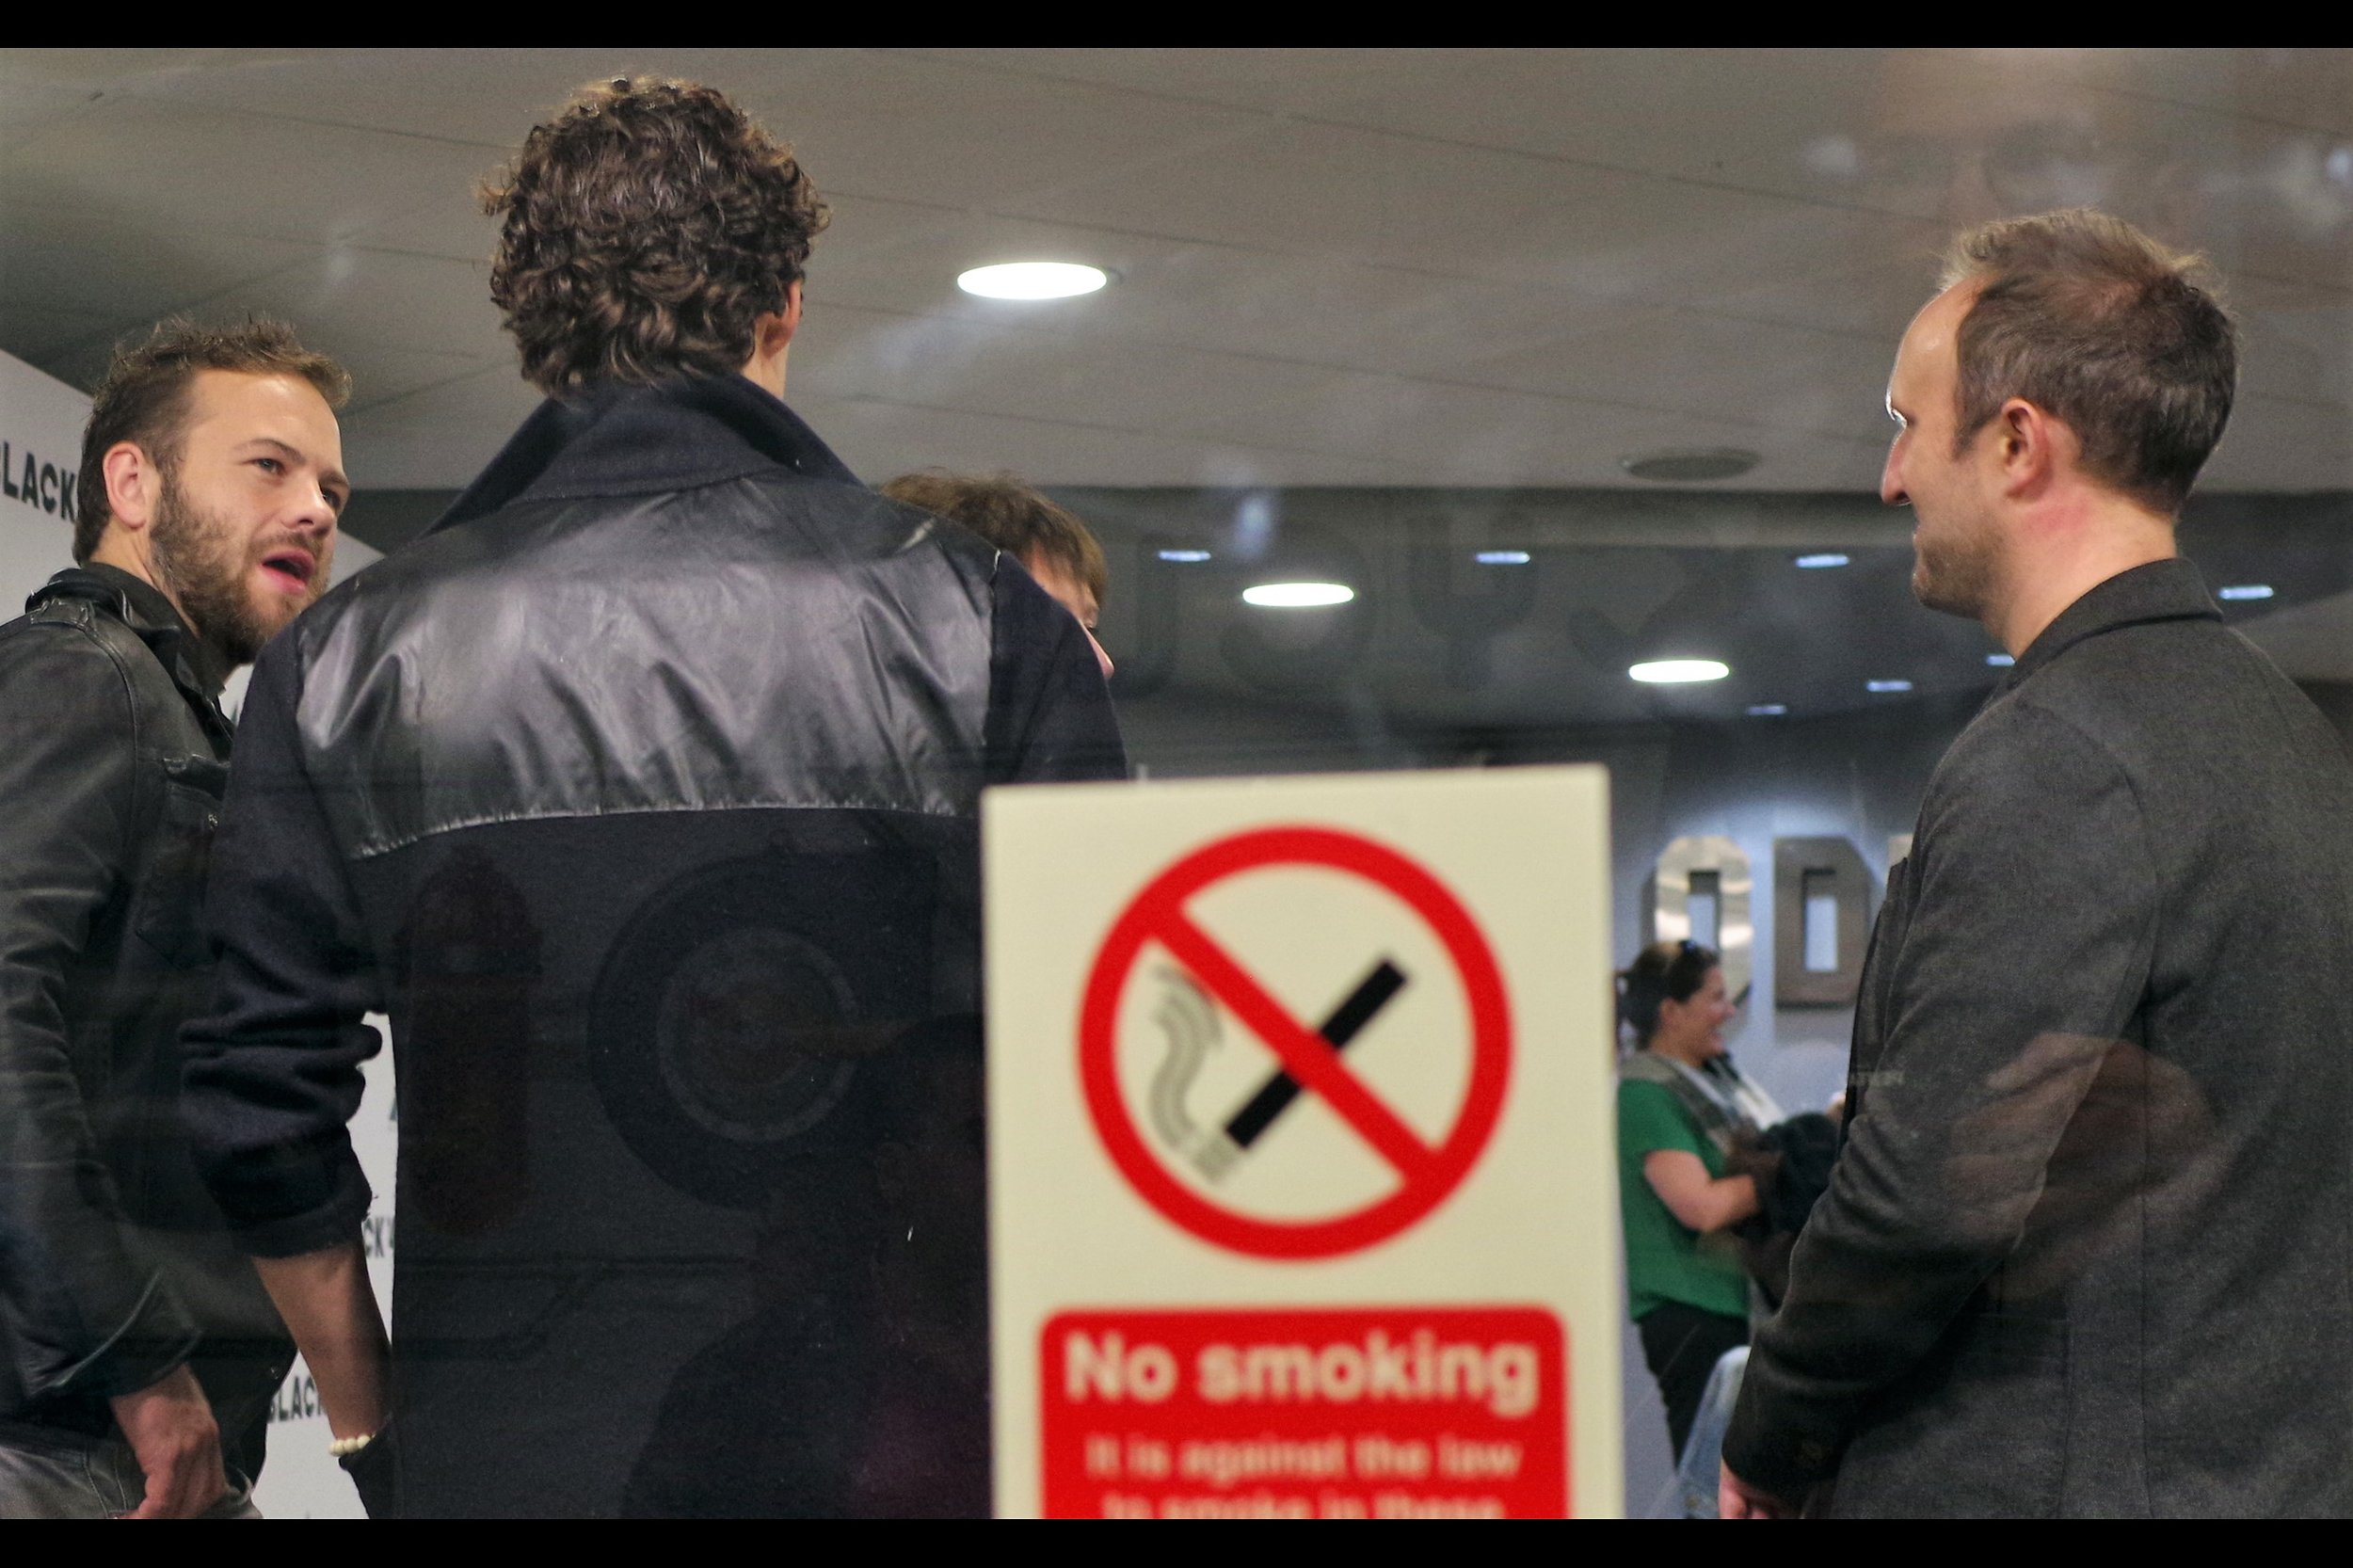 I think the man at far left is Moe Dunford, and if so he's in this movie and I'm sorry he's a bit obscured. But not smoking is also very important and even if blurry I think this sign is relevant.